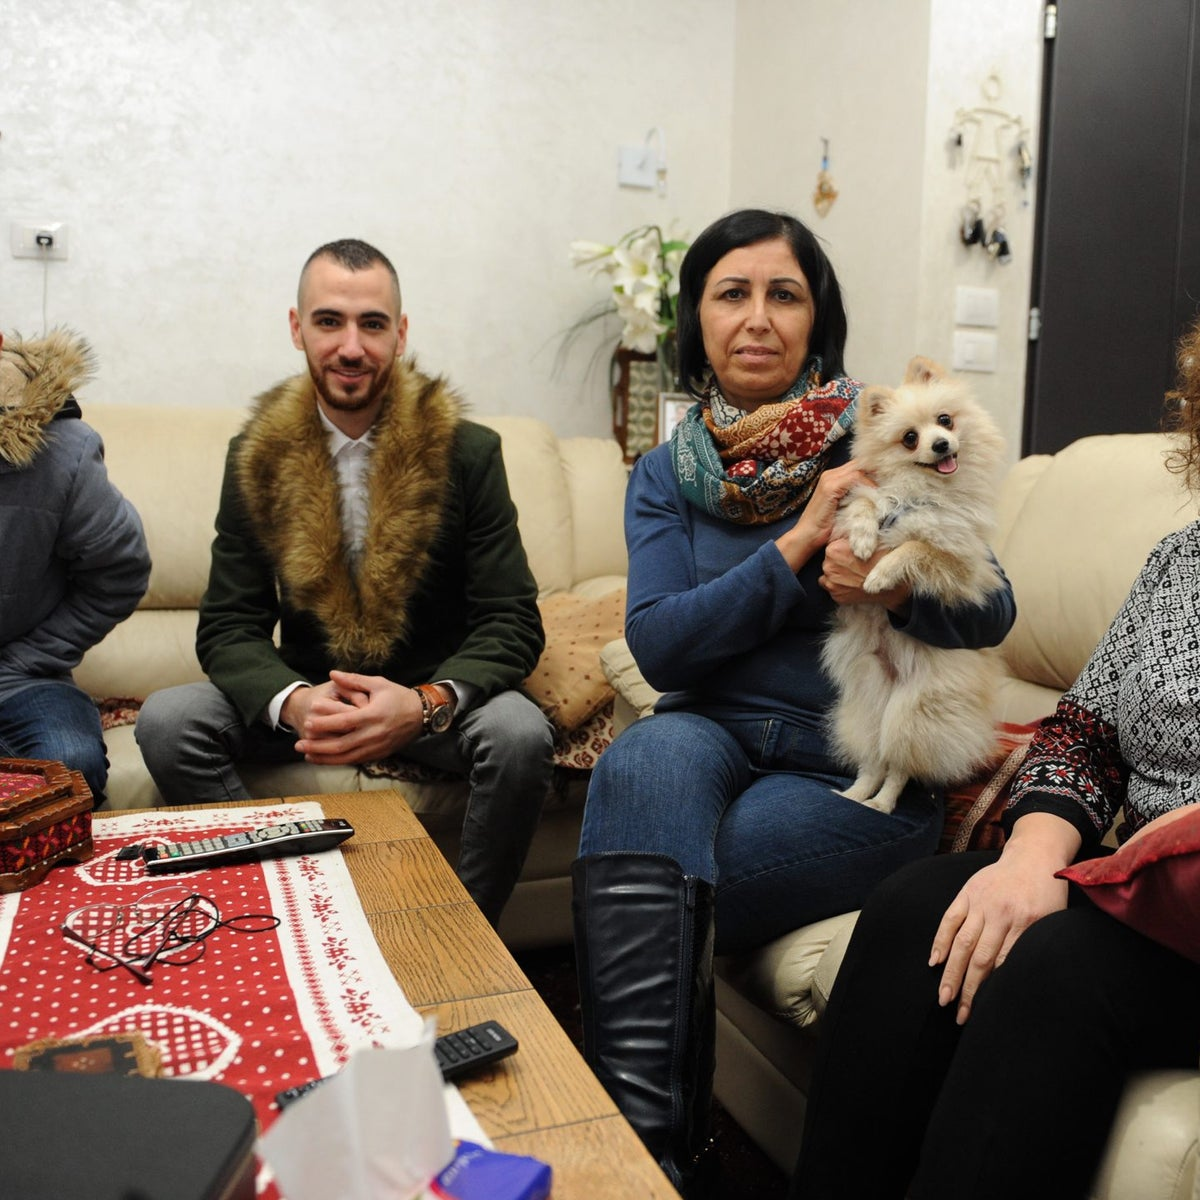 Members of the Abad family and their dog Gucci, Nazareth, December 27, 2017.